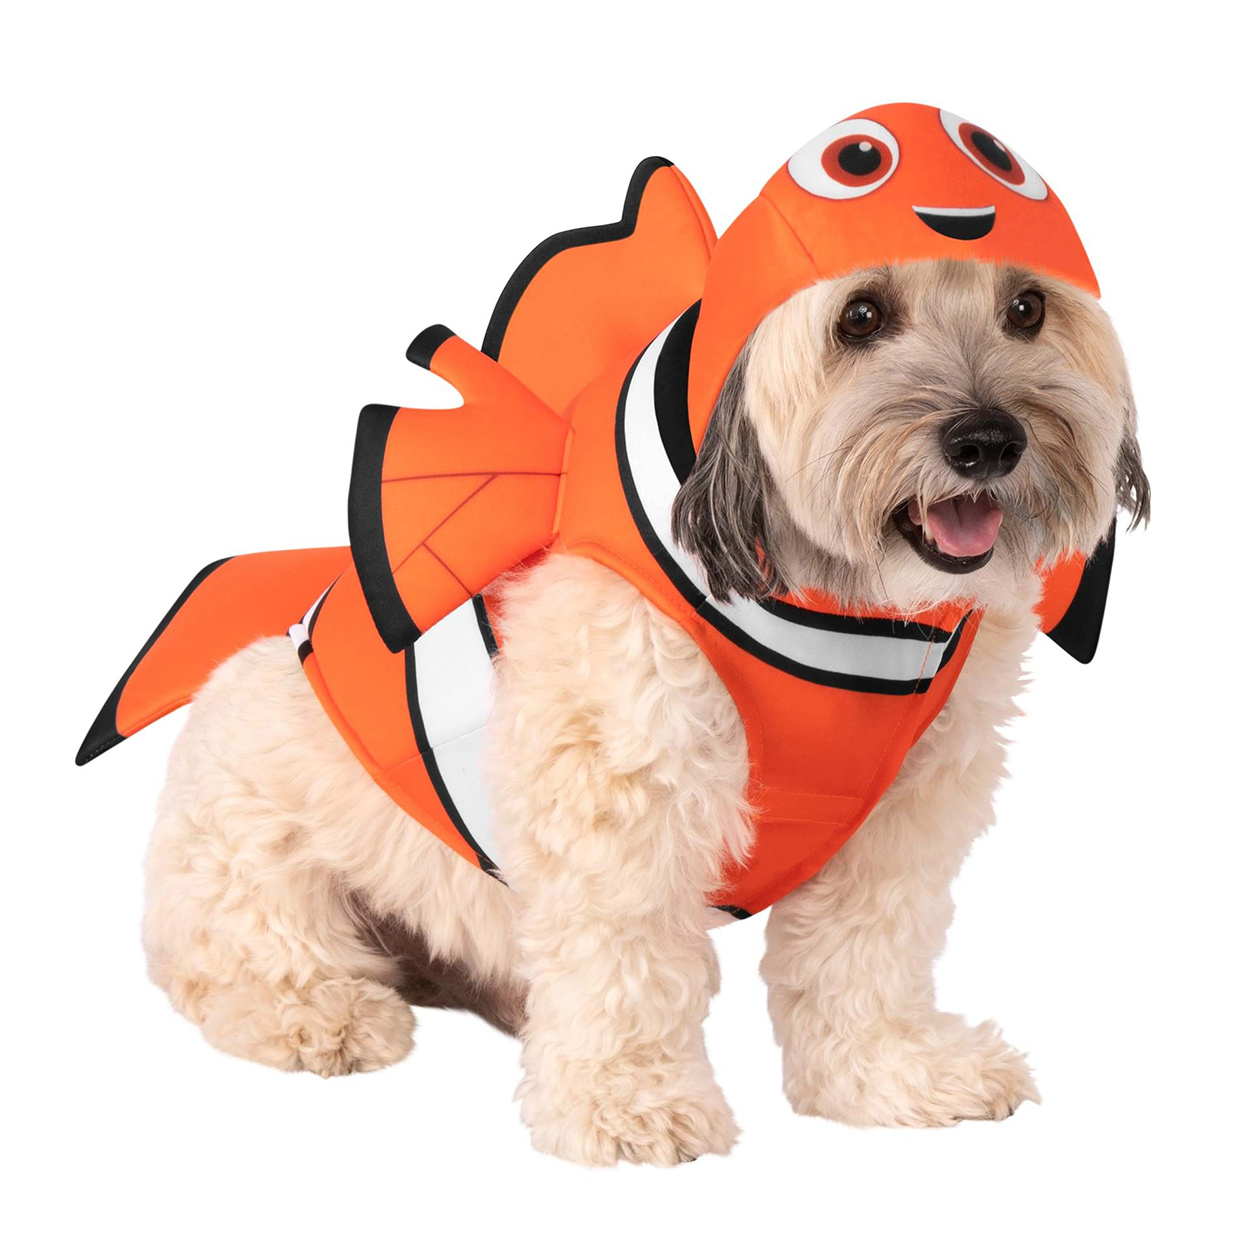 Dog wearing a Finding Nemo Dog Costume on a white background